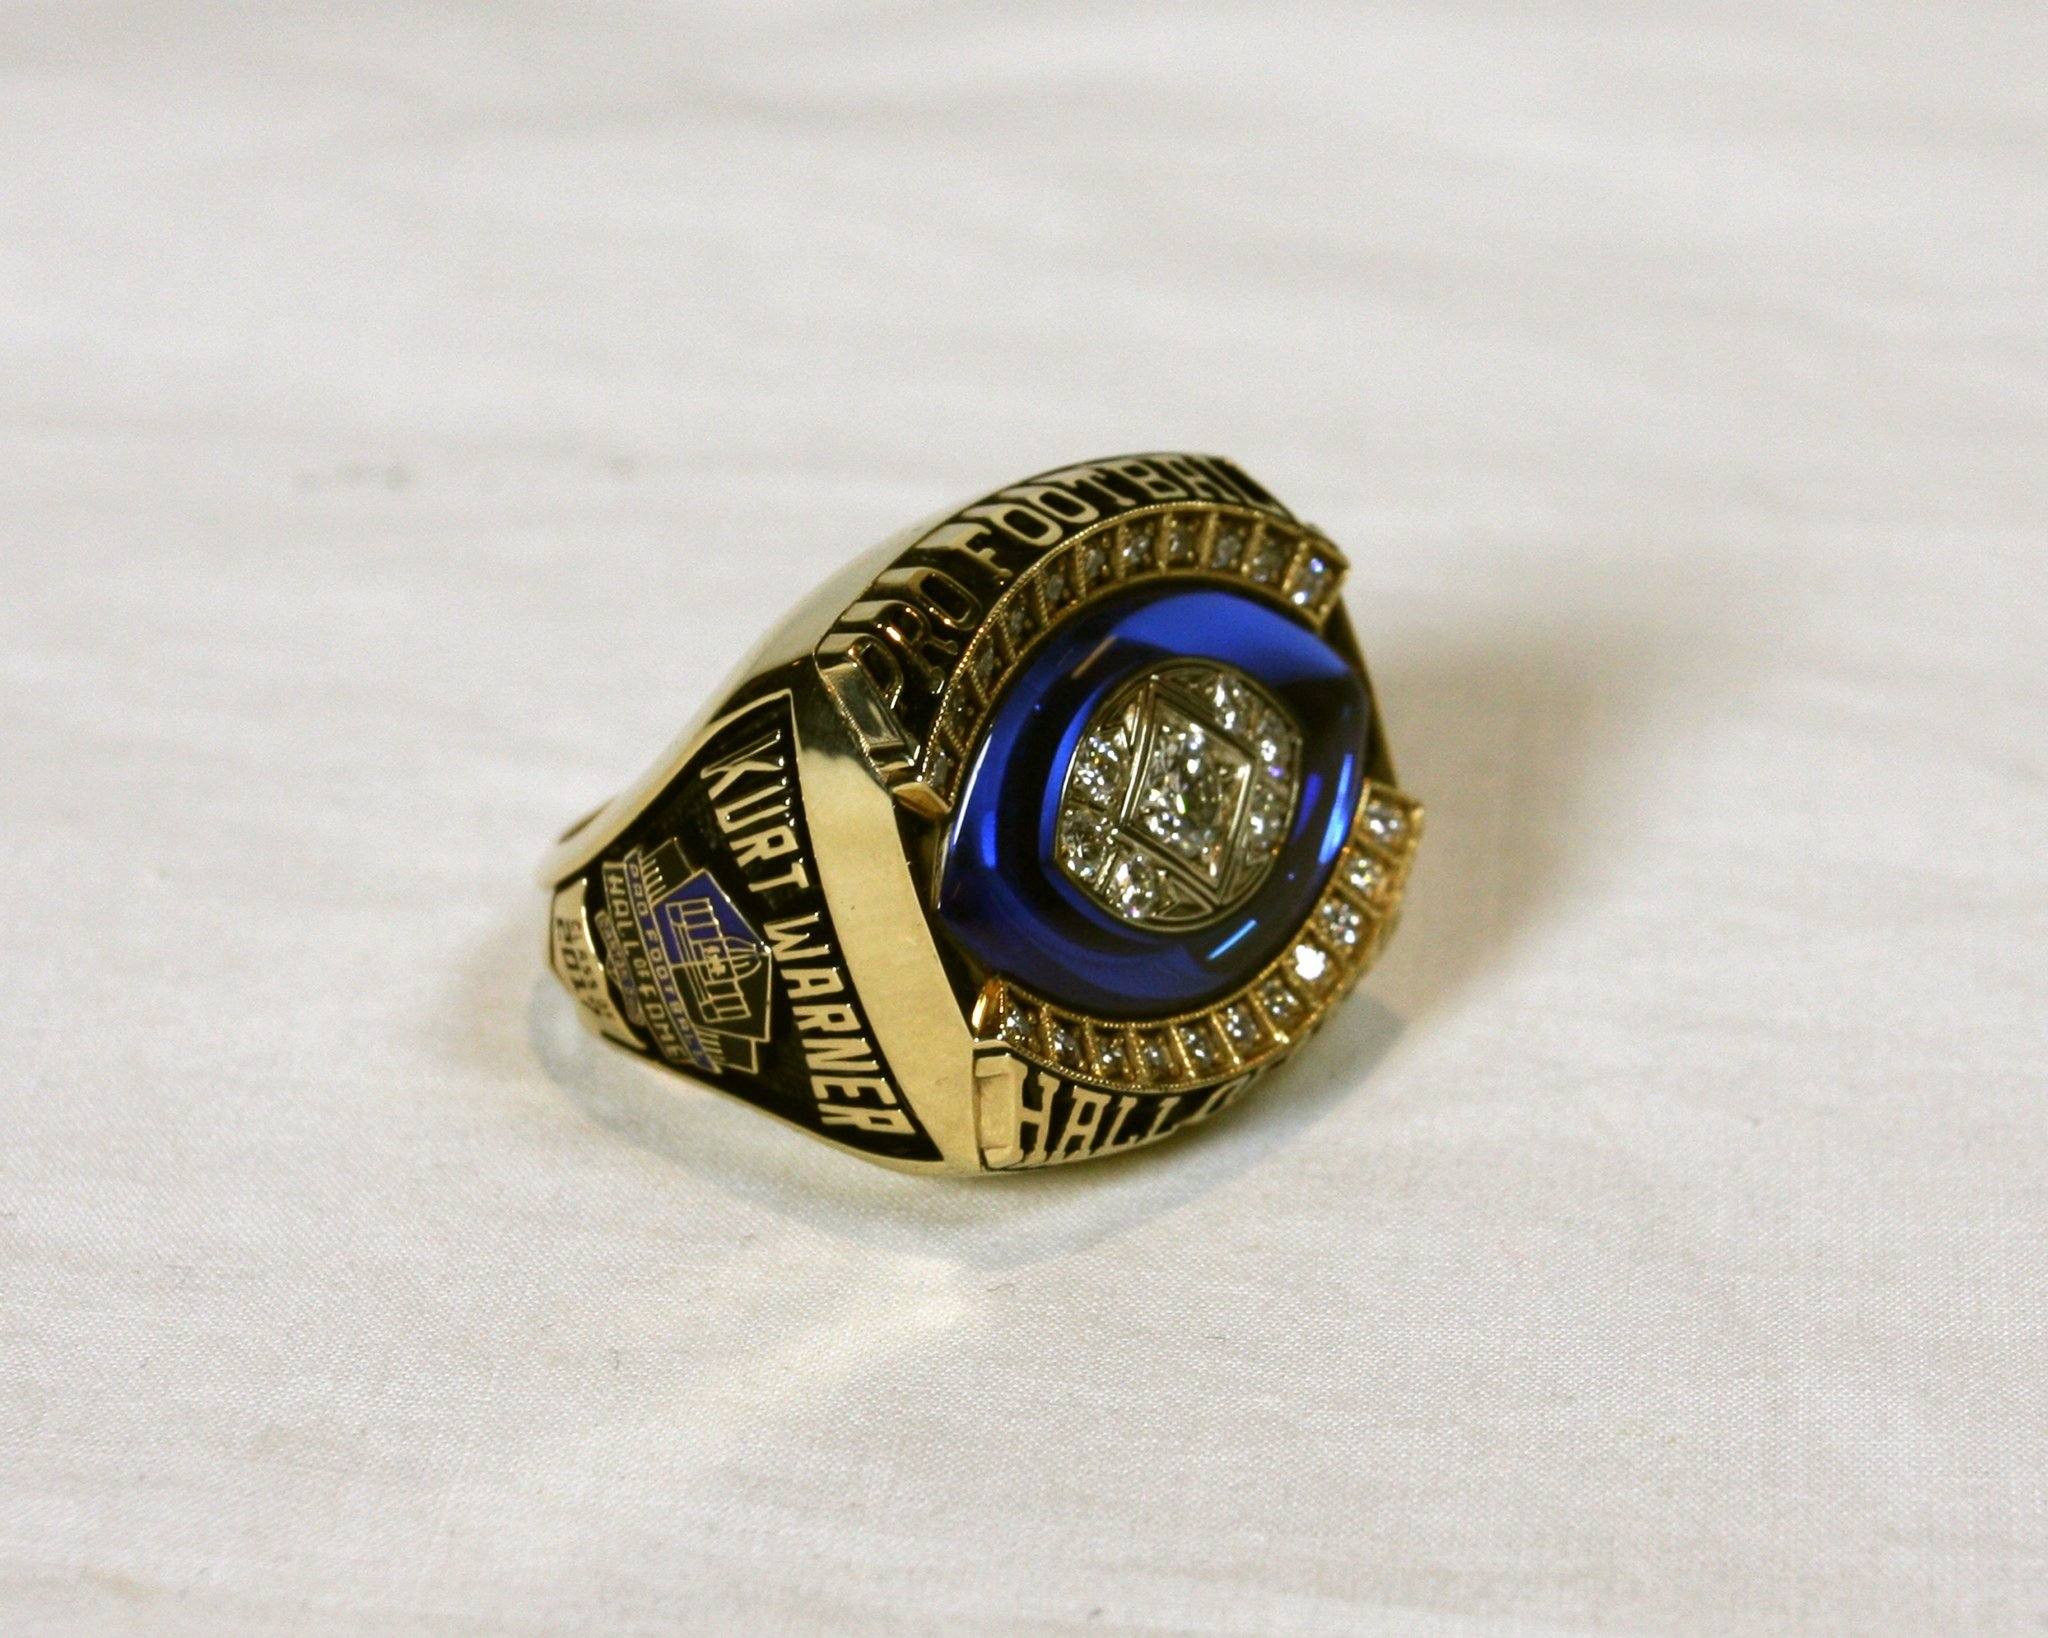 The team presented Warner with his Hall of Fame Ring. He was surprised to see it for the first time on social media: (Source: Pro Football HOF/Kay Jewelers)